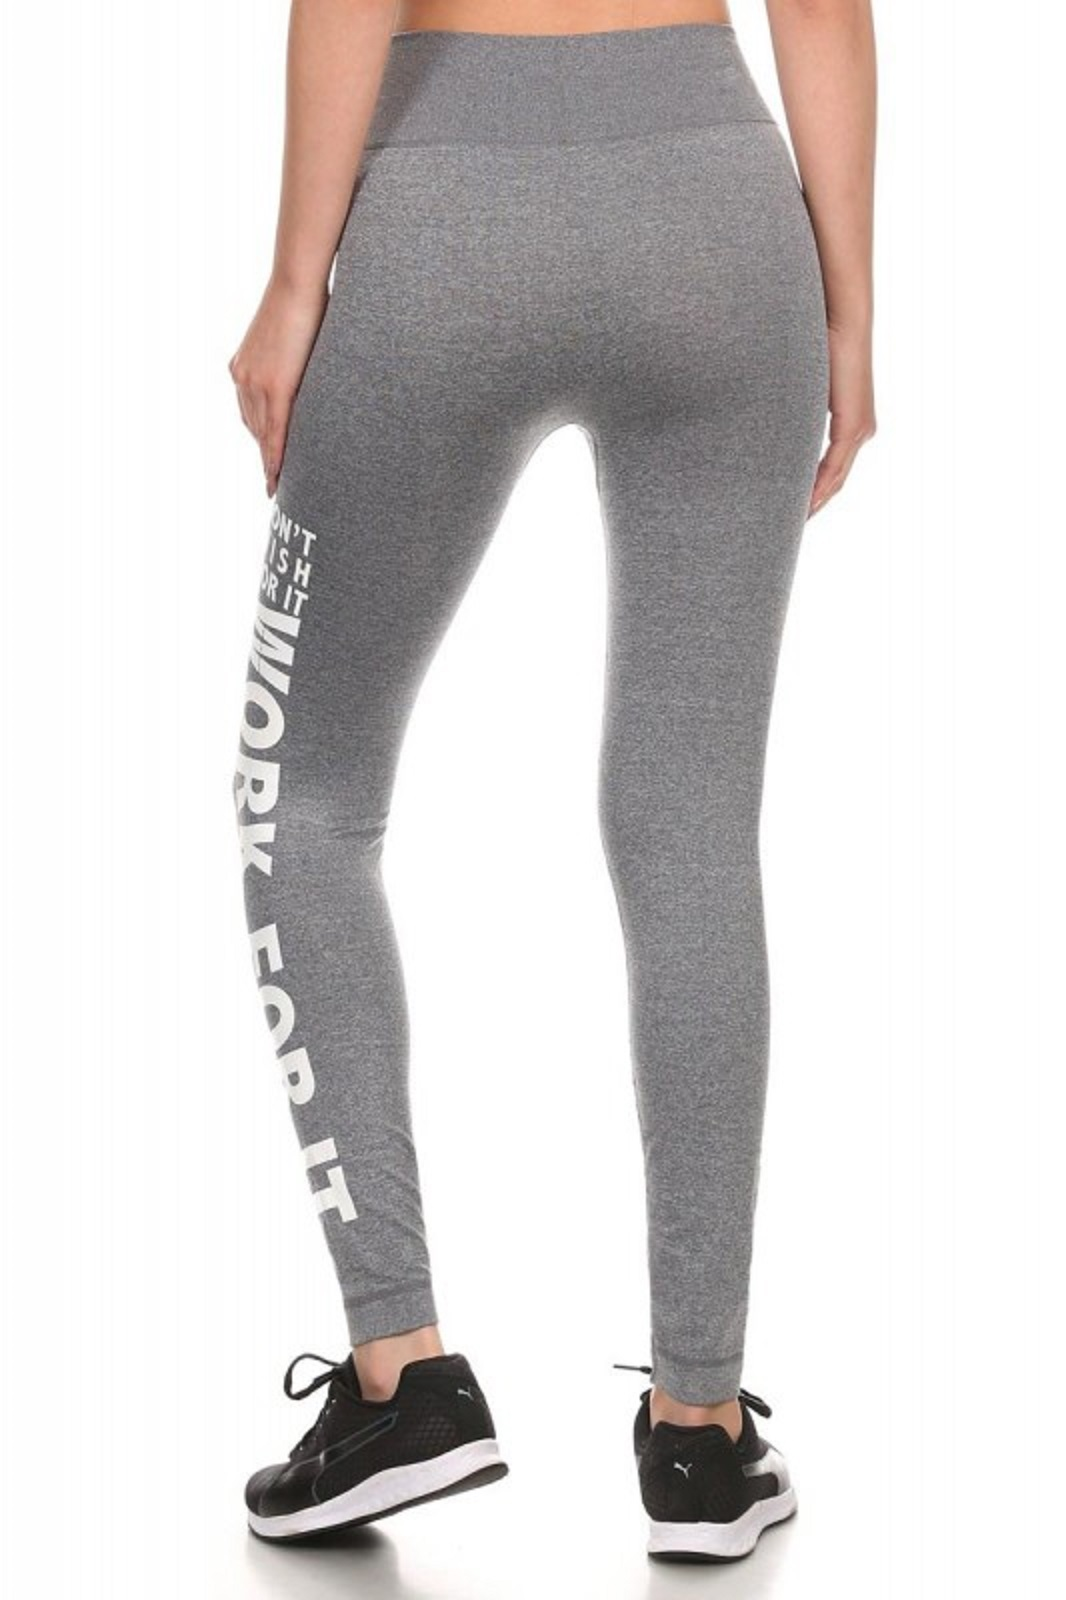 f1a720c2d9429 Gray & White ActiveWear Leggings With 'Dont Wish For It Work For It ...